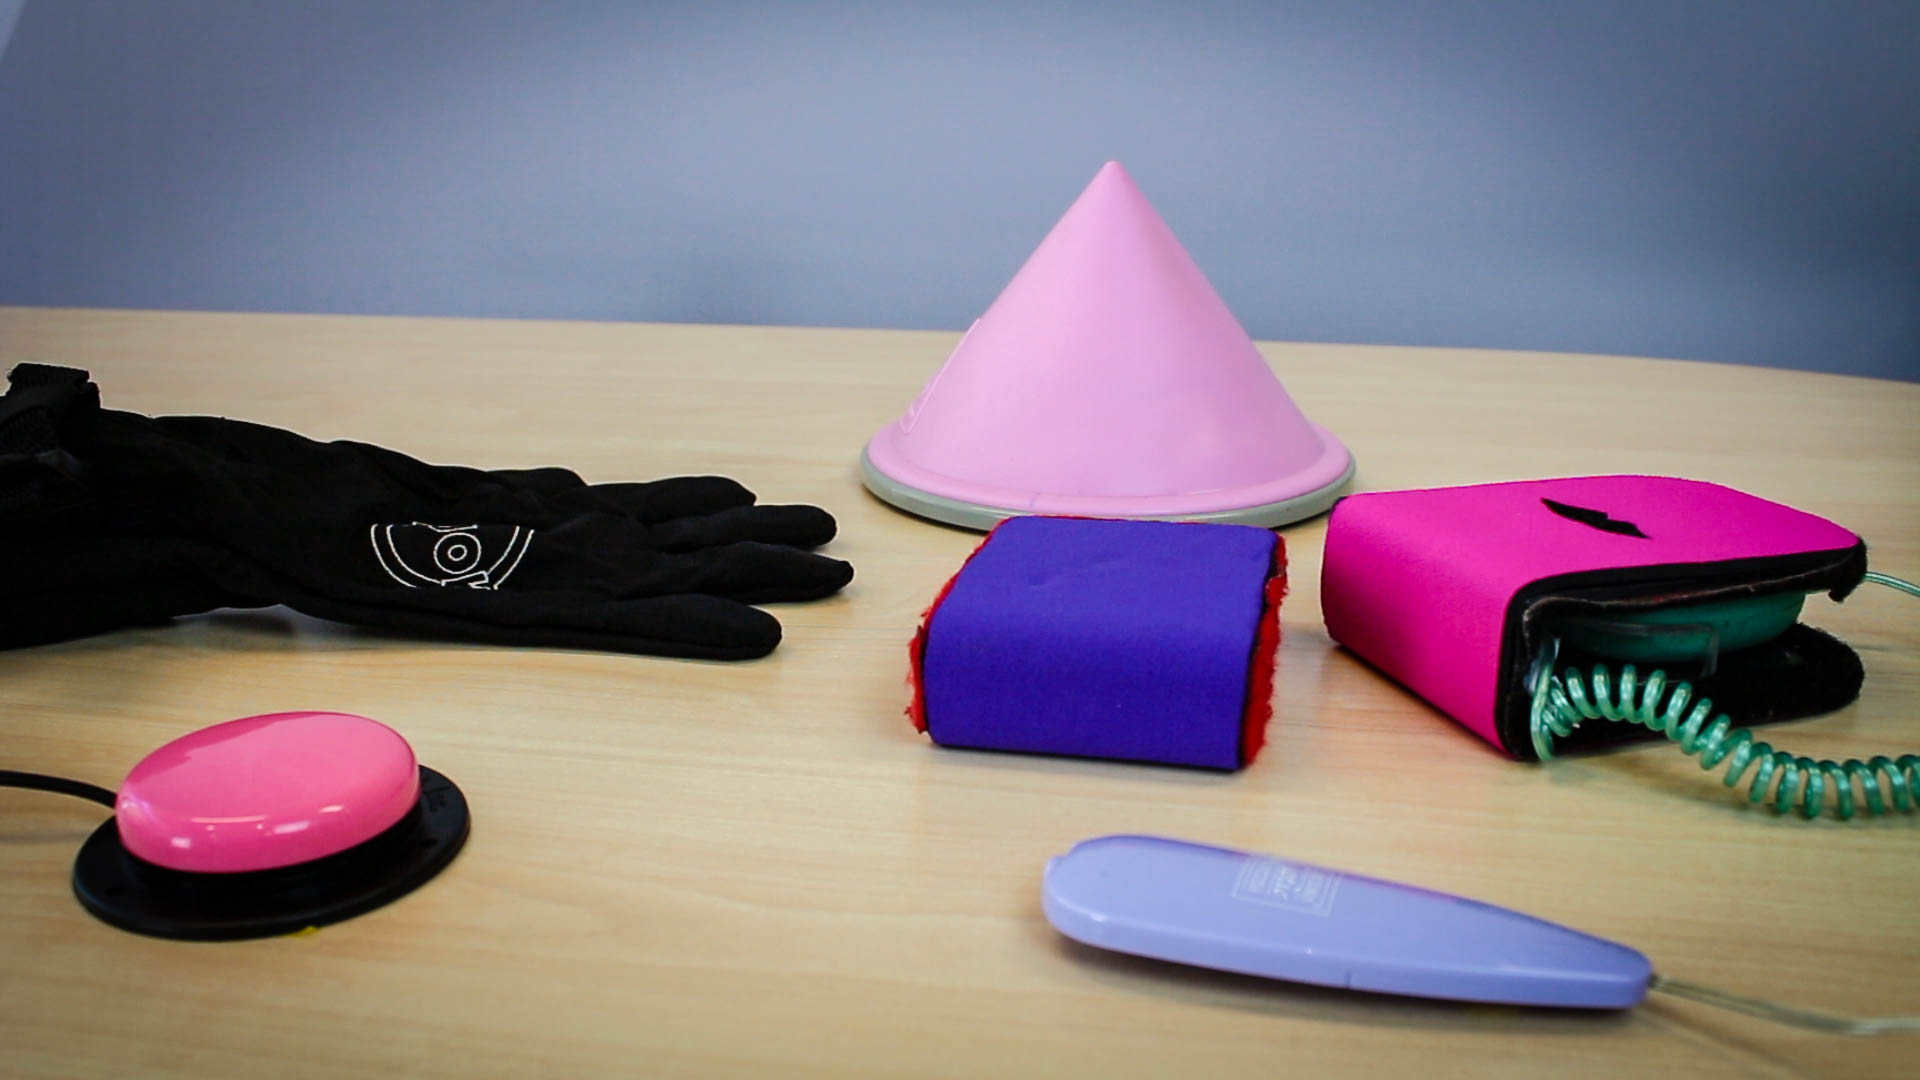 brightly coloured sexual devices in different shapes displayed on table